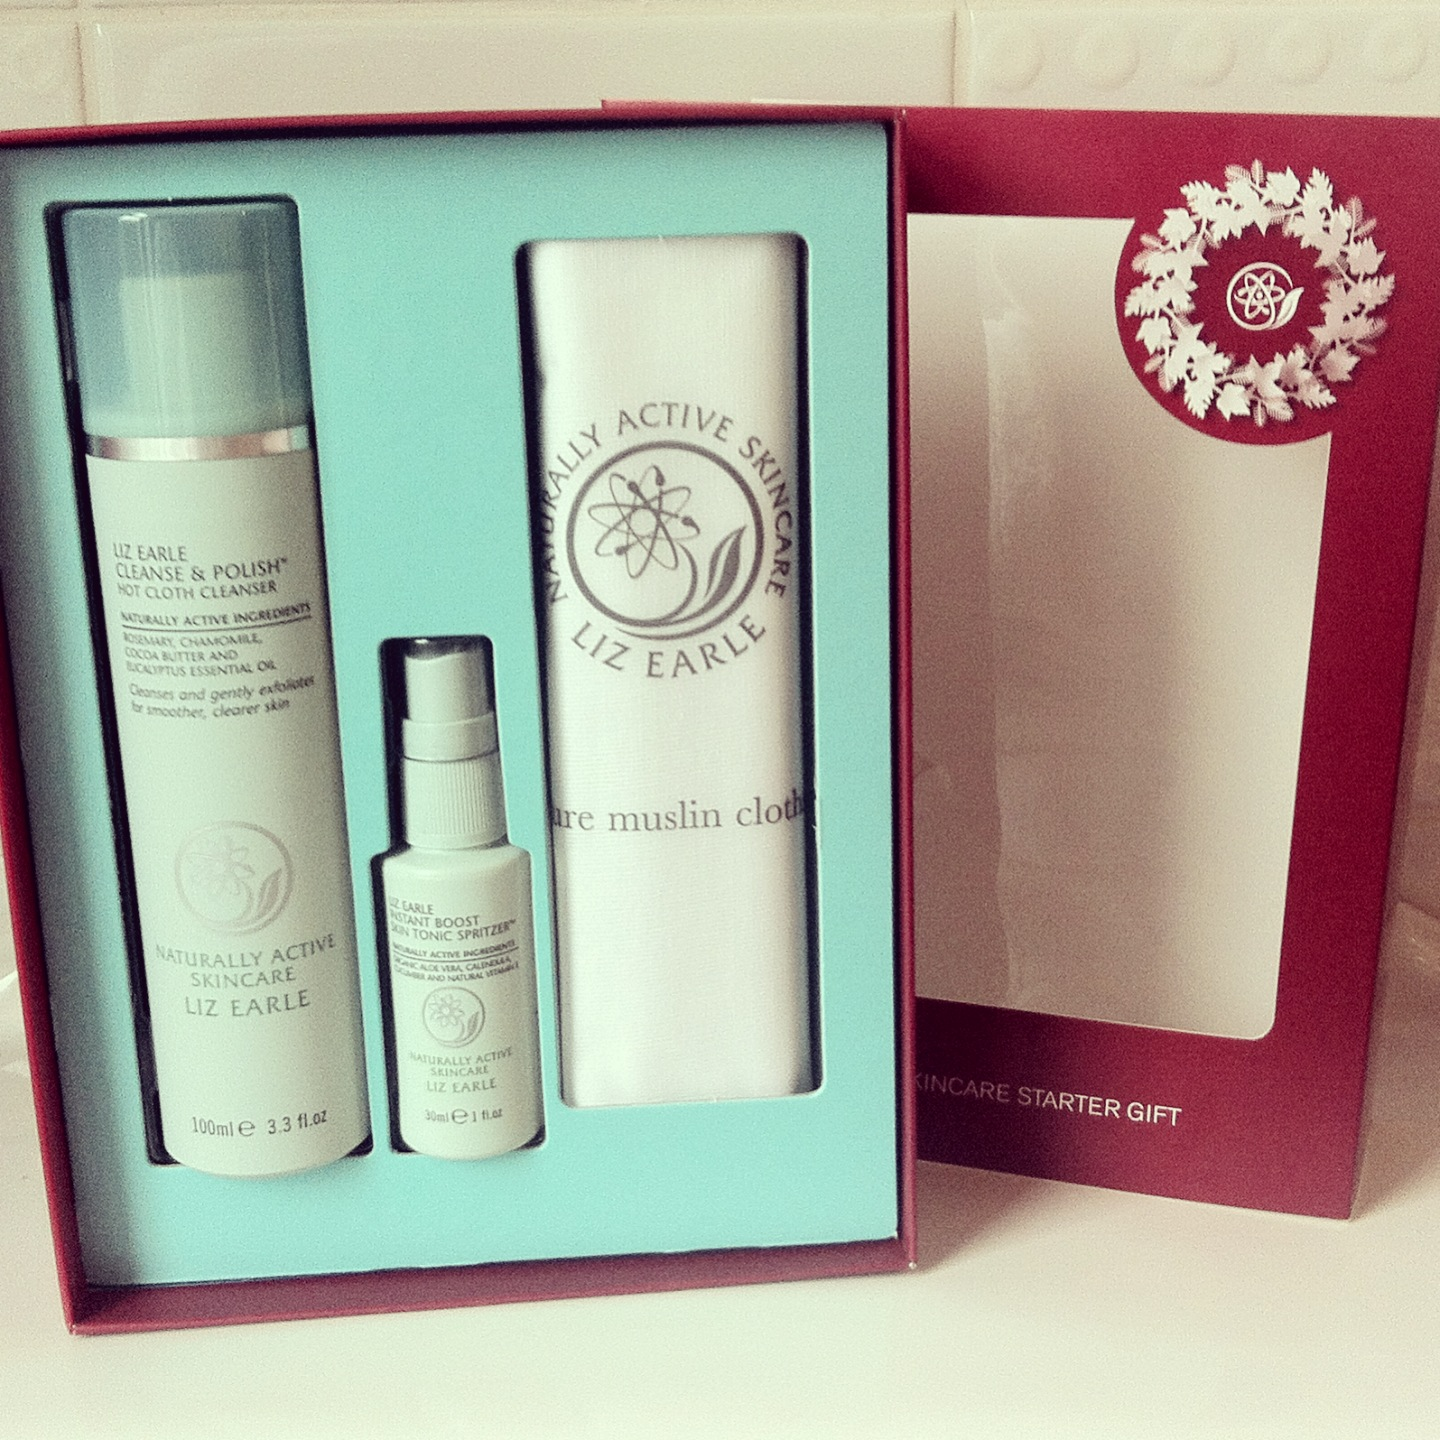 Find great deals on eBay for liz earle polish. Shop with confidence.